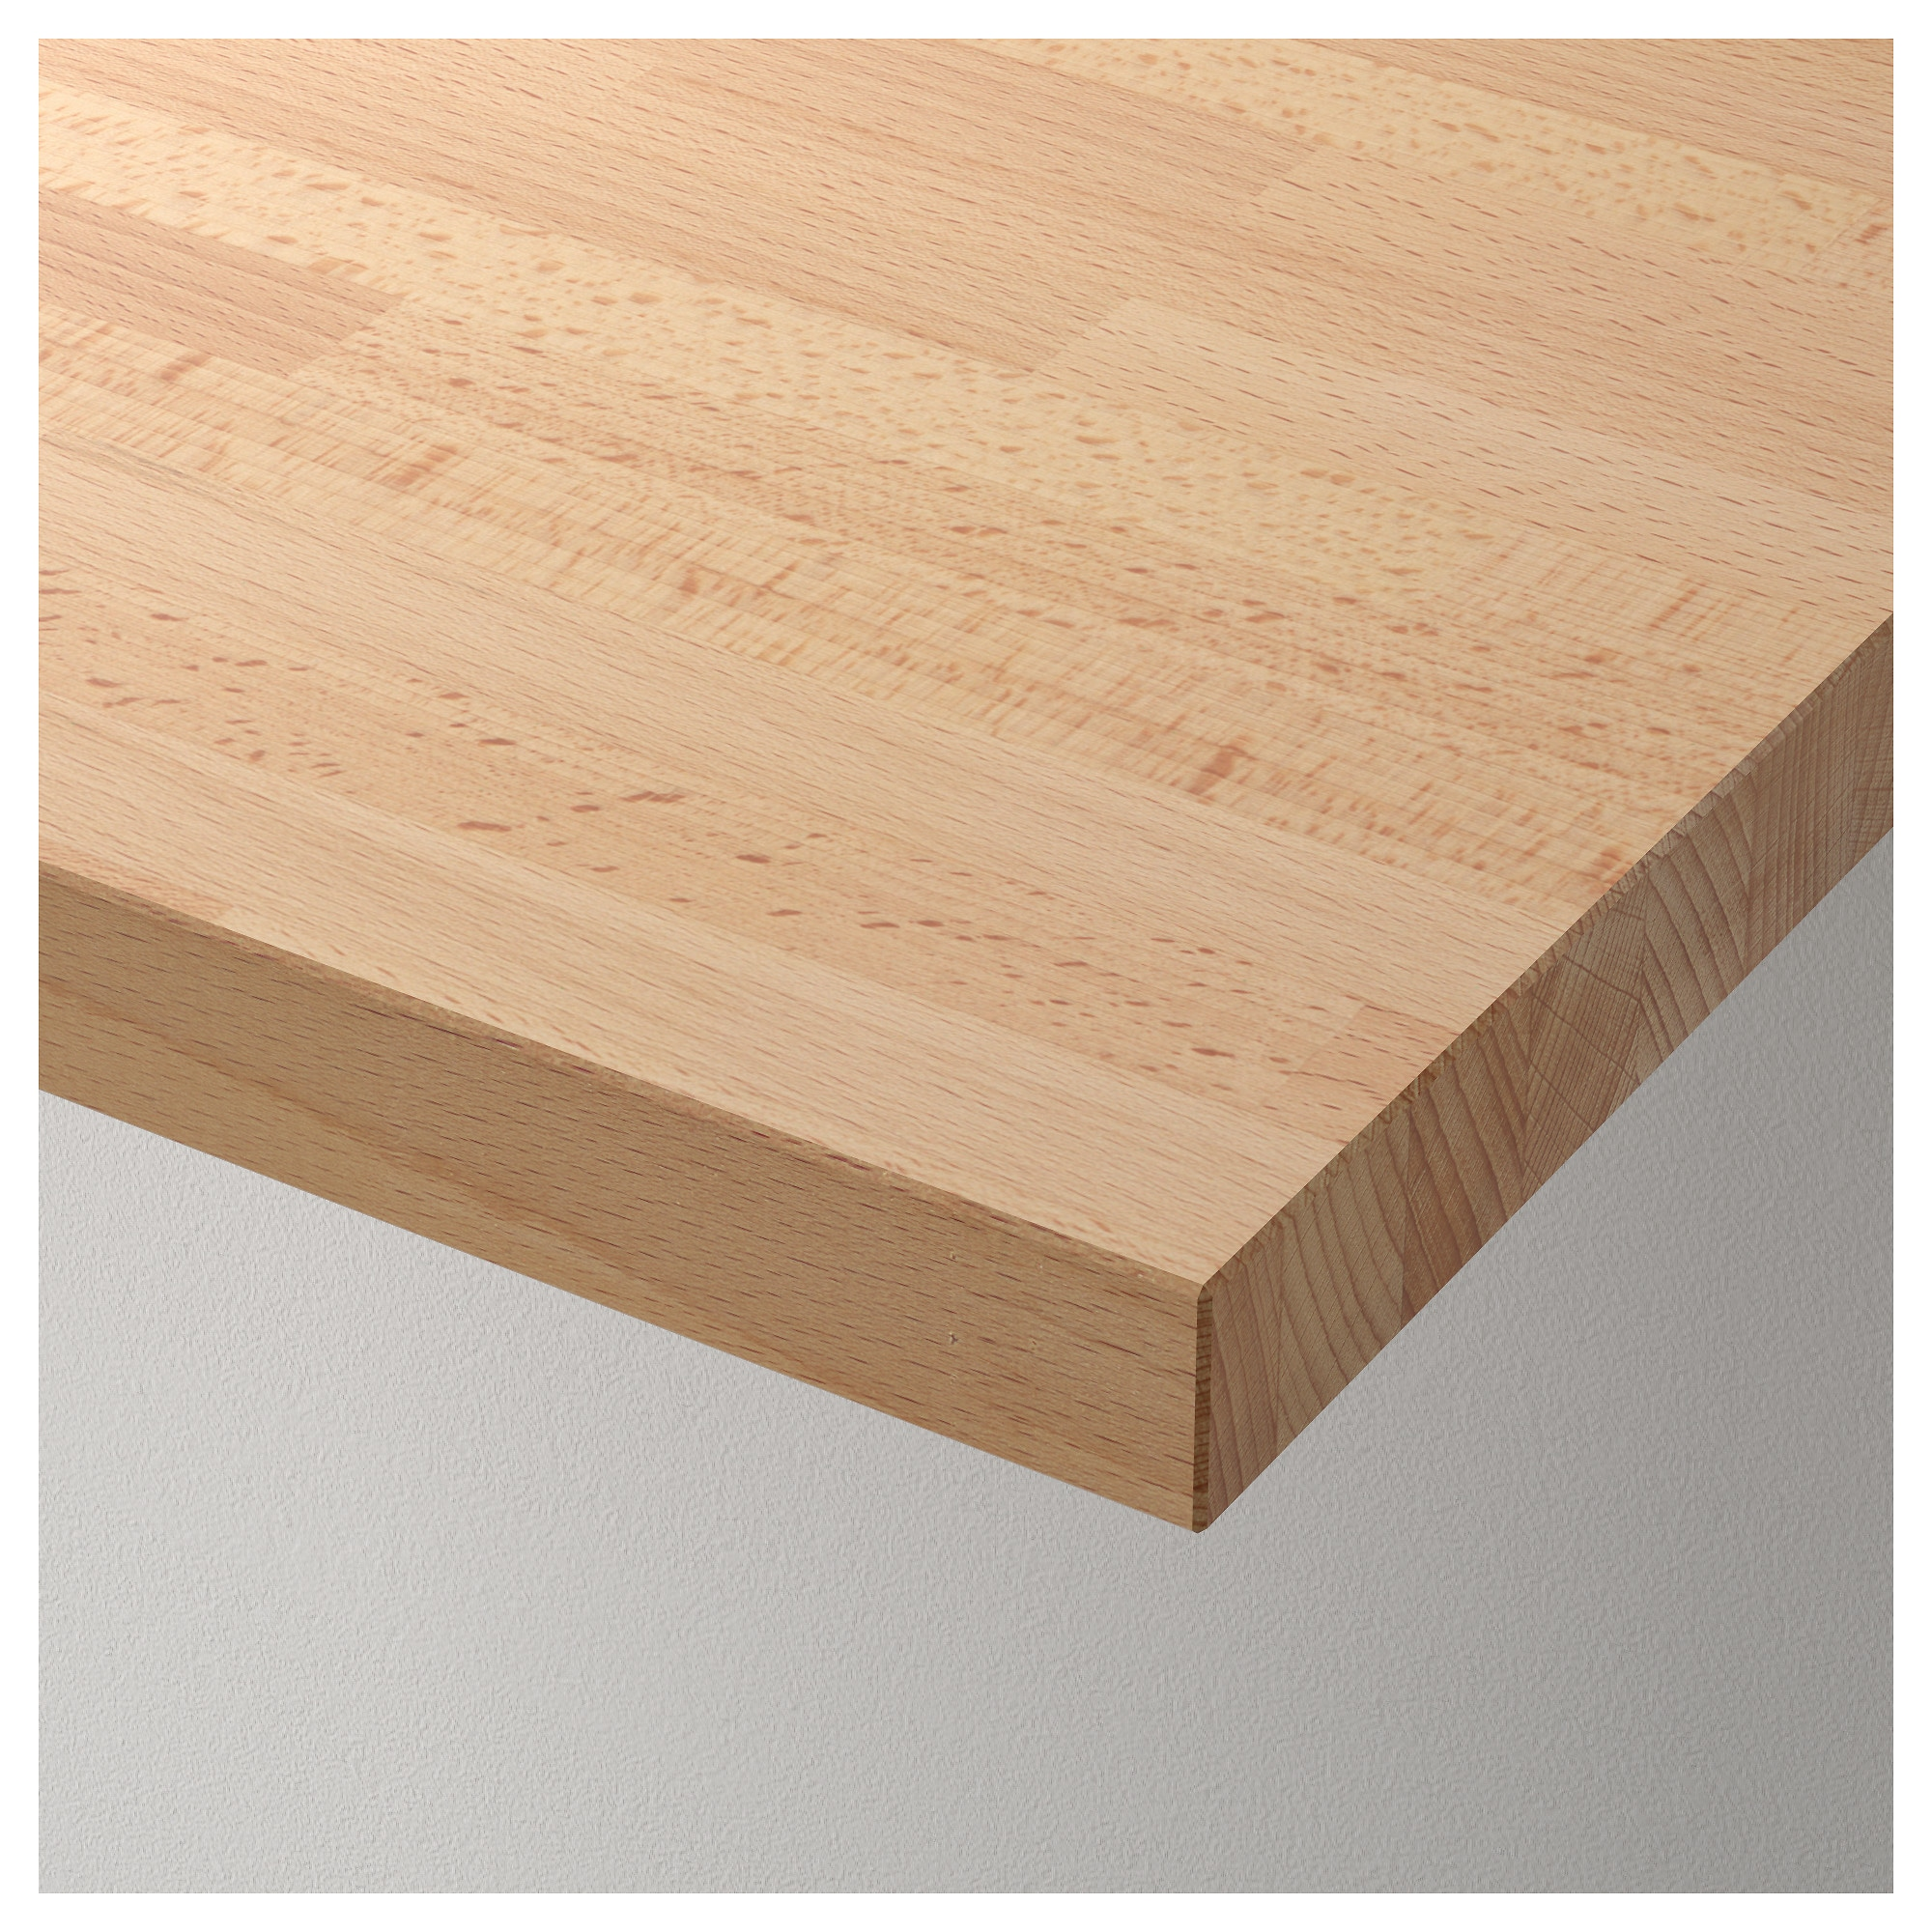 Ikea Wood Countertop Review Gerton Table Top Ikea